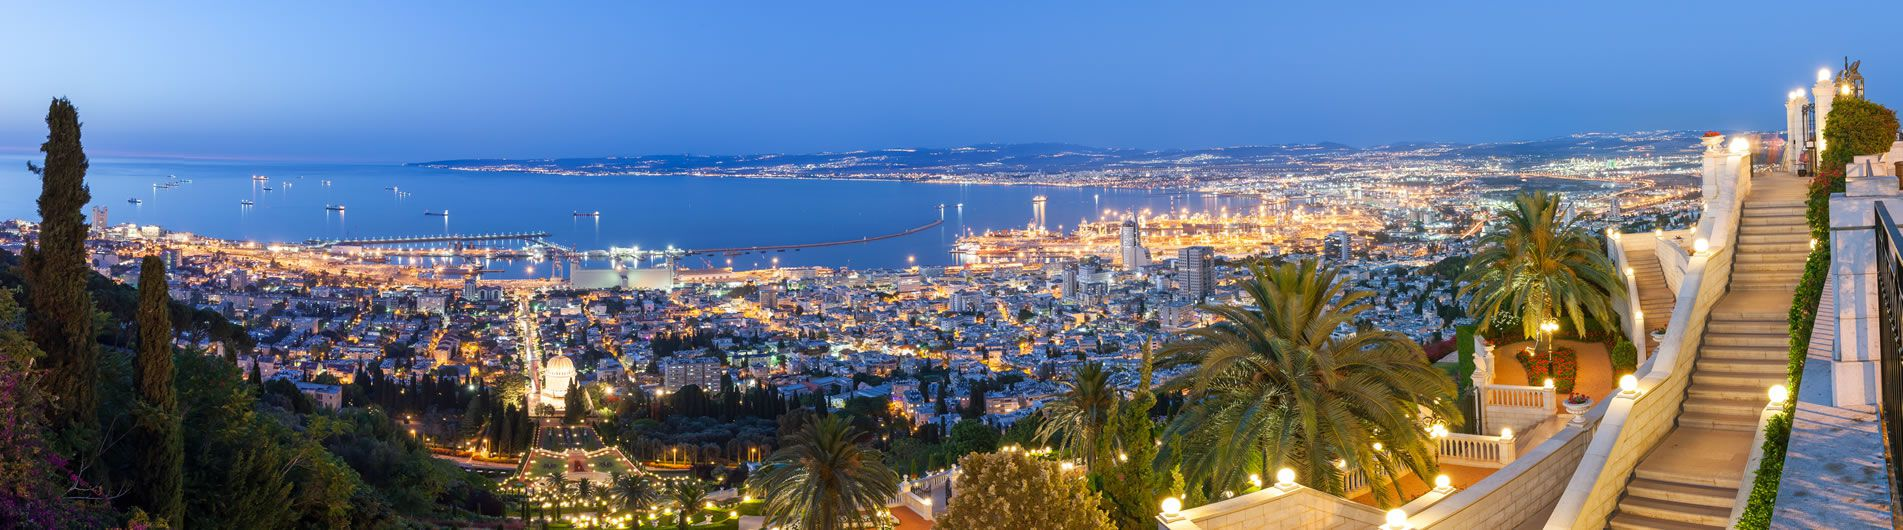 Tour of Haifa, Israel